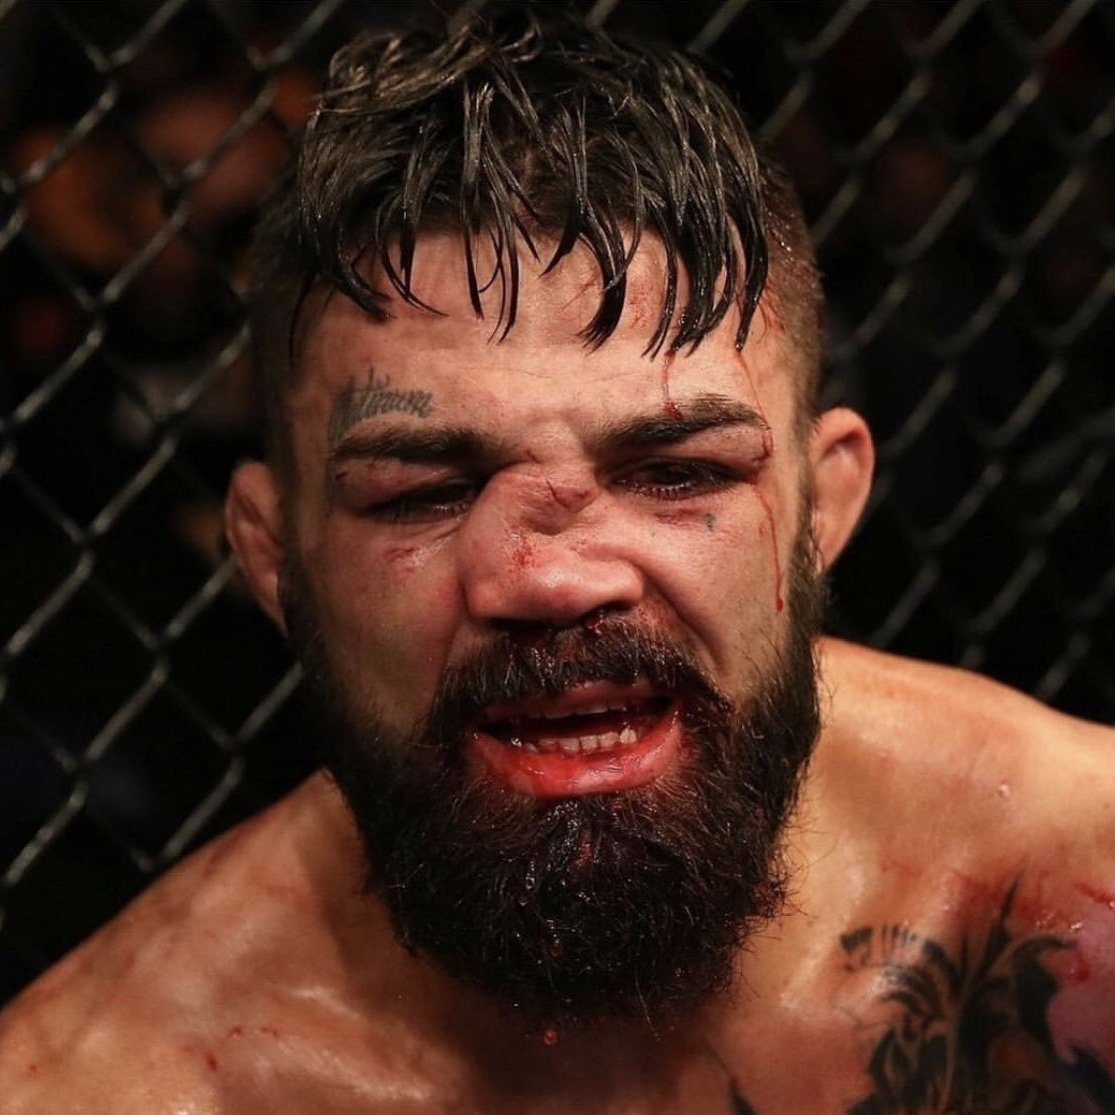 What a fight this was 🔥🔥 that knee from @LuqueVicente was savage 👊🏼👊🏼 hats off to @PlatinumPerry he has some heart 🧡🧡   Link in bio to the latest episode 🎧💯  #ufc #UFC240 #UFC239 #UFCUruguay #ufc242 #mma #fight #fighting #podcast #PodernFamily #shevchenko #ufc241